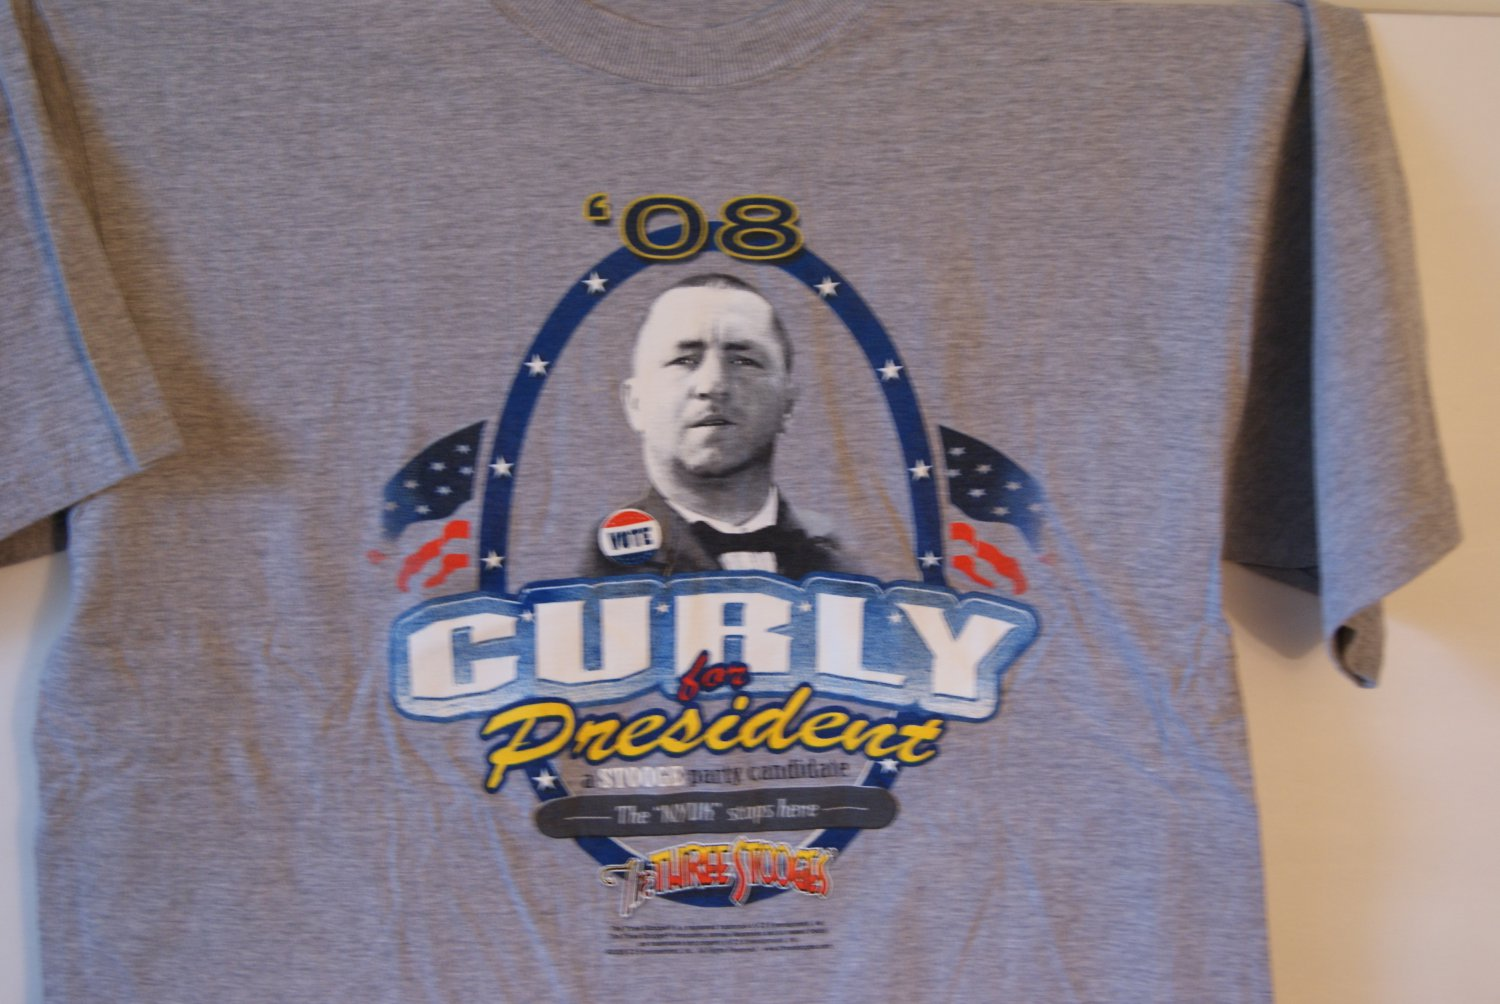 Curly for President tee